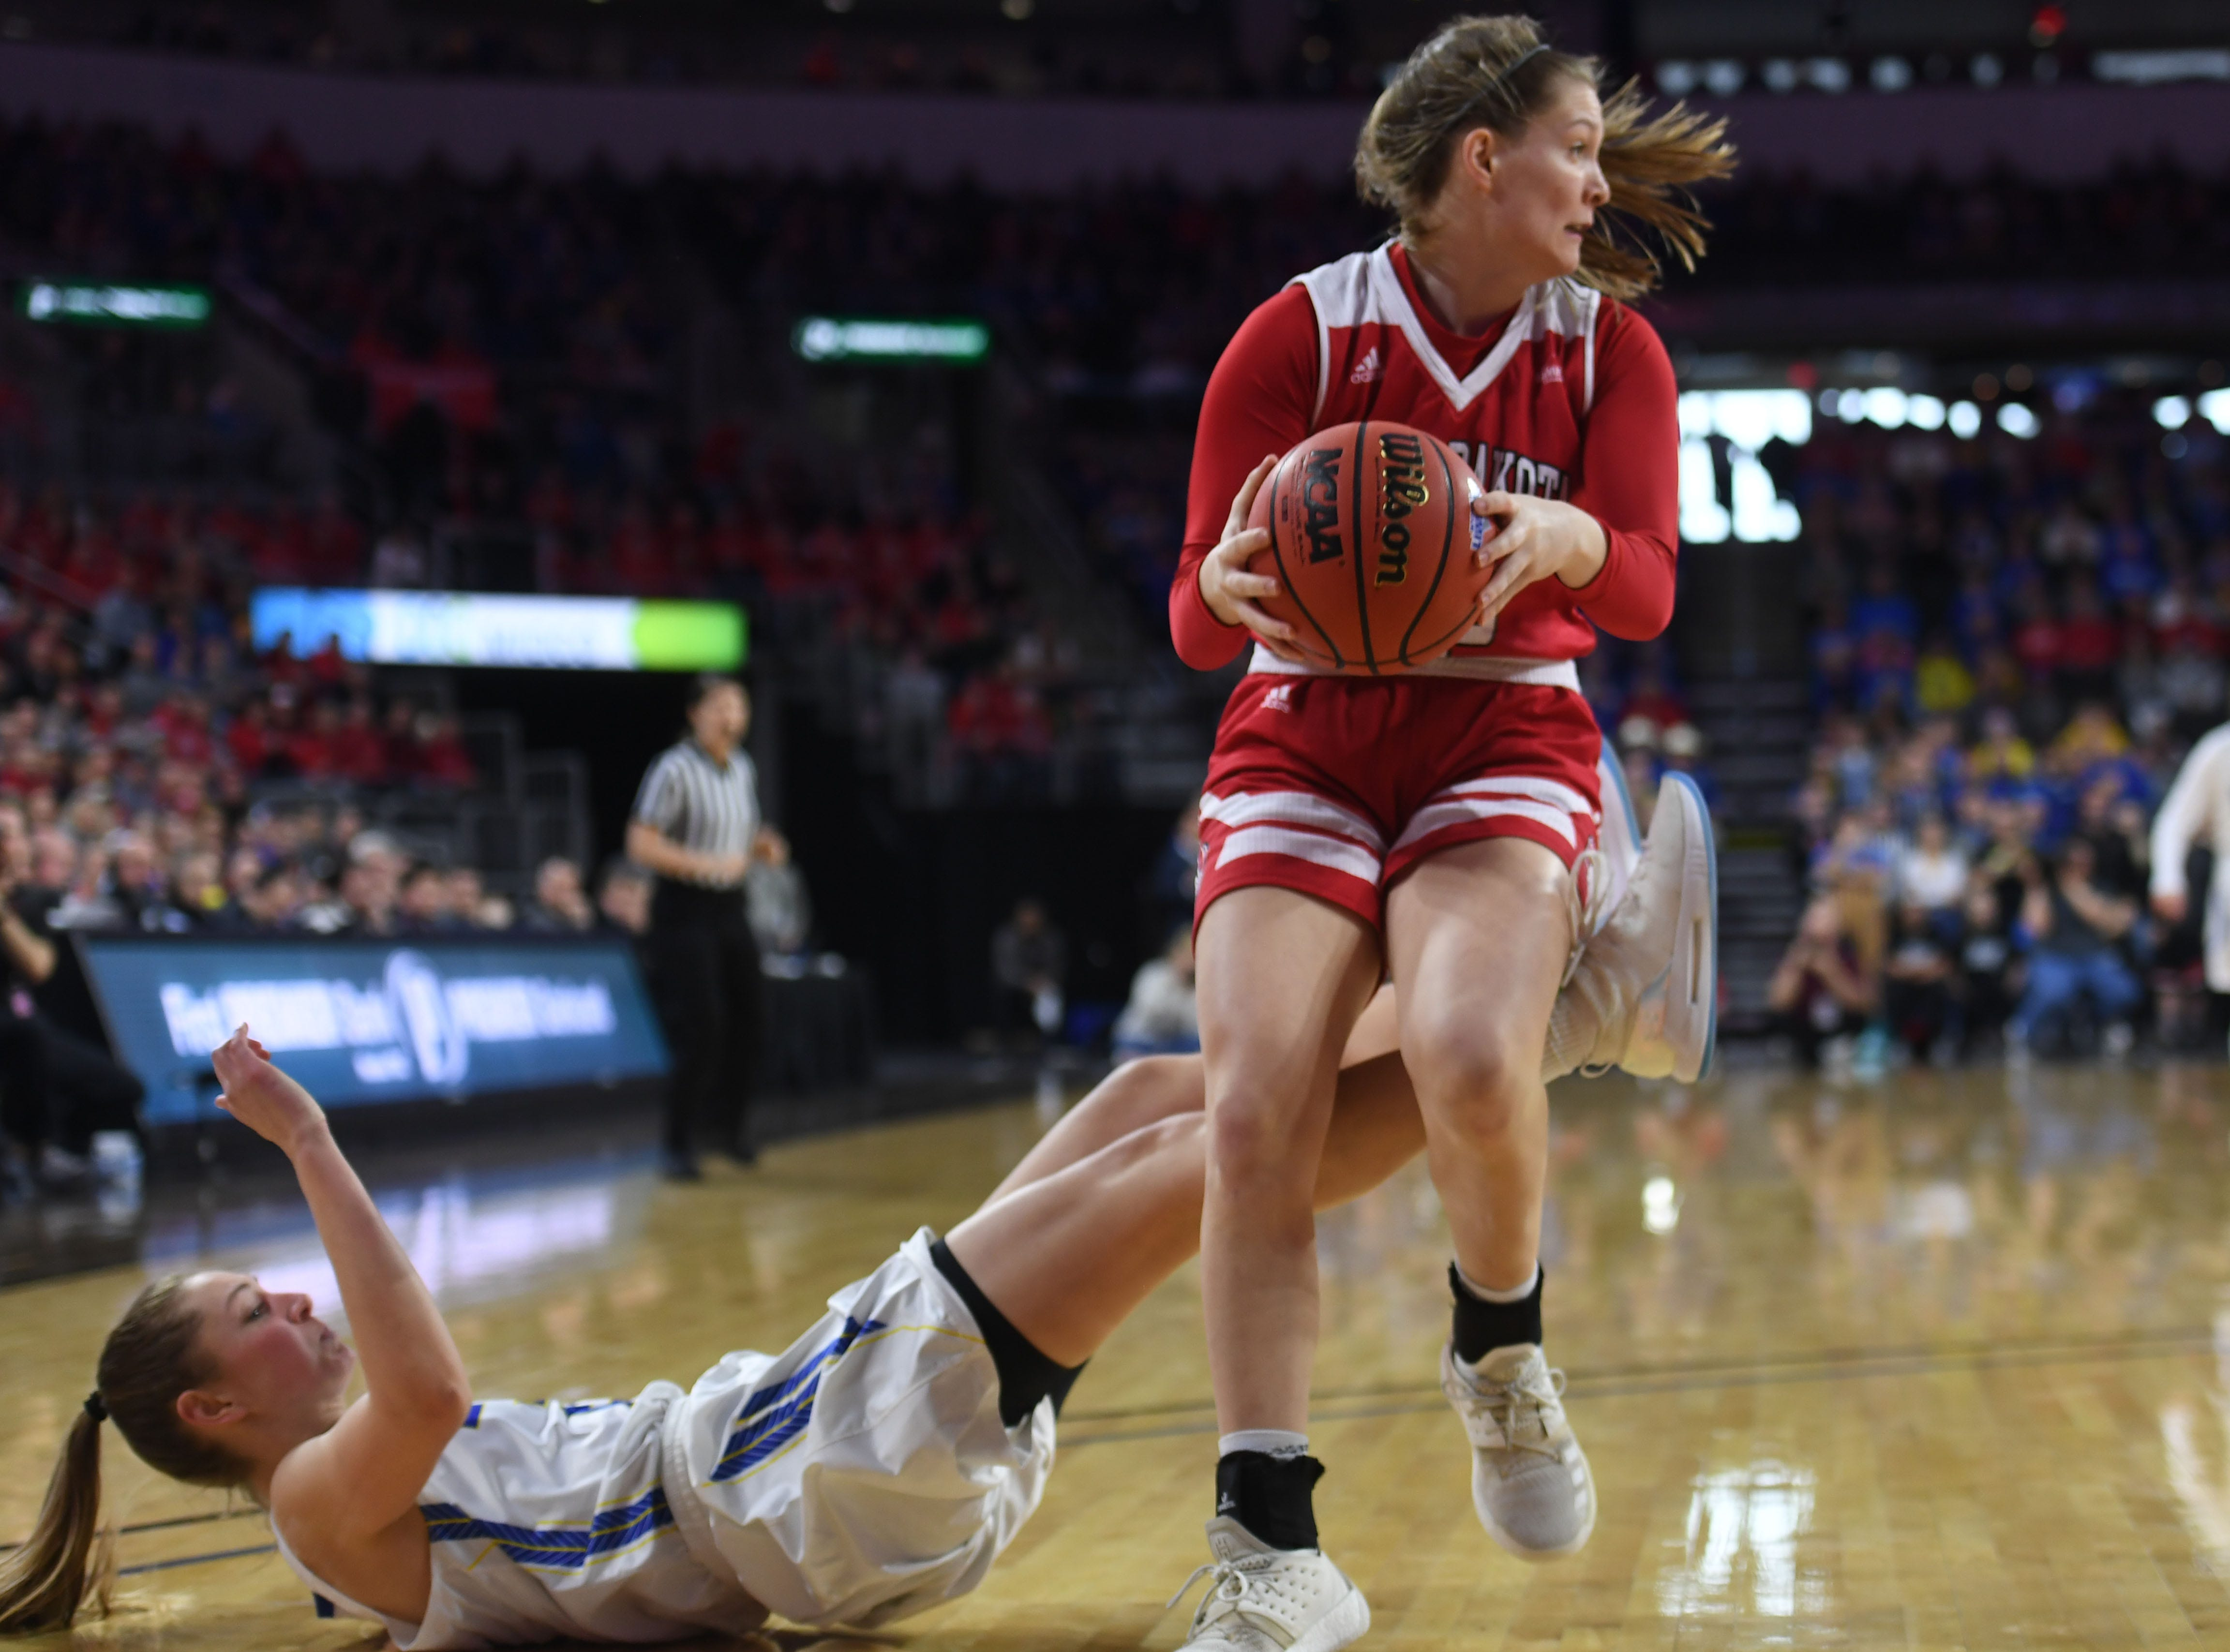 USD's Chloe Lamb goes against SDSU defense during the game Tuesday, March 12, in the Summit League women's championship at the Denny Sanford Premier Center in Sioux Falls.